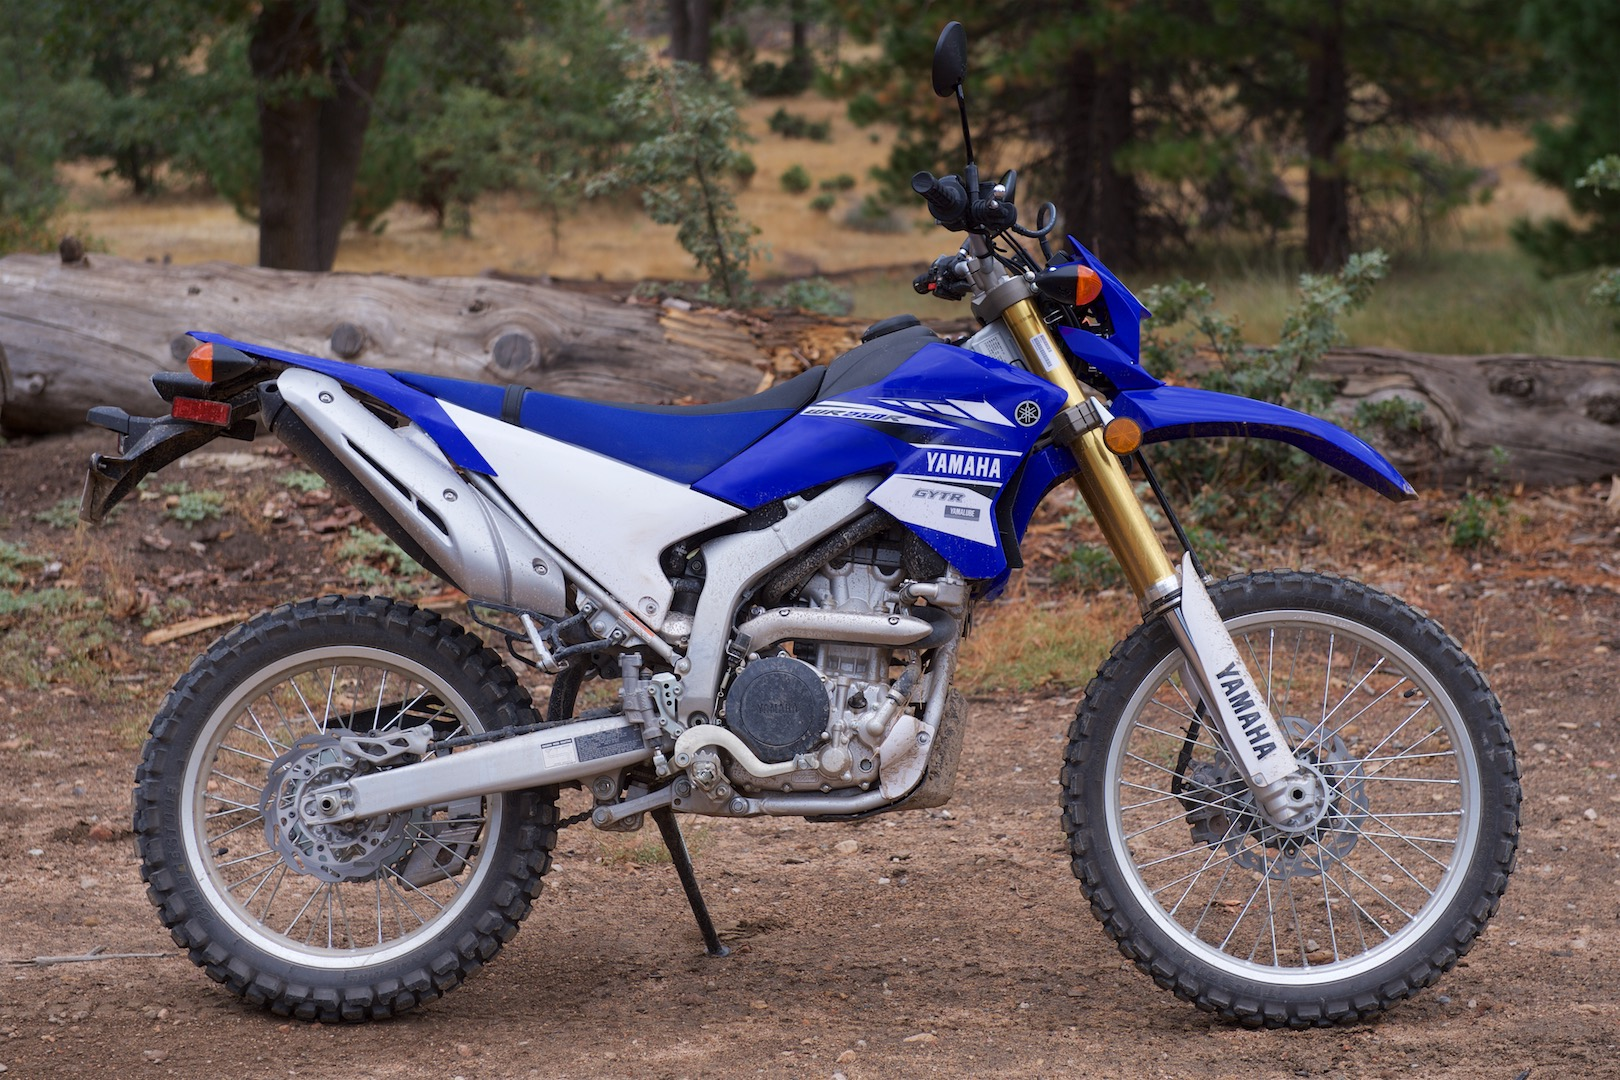 2017 Yamaha WR250R Review | A Motorcycle in the Middle